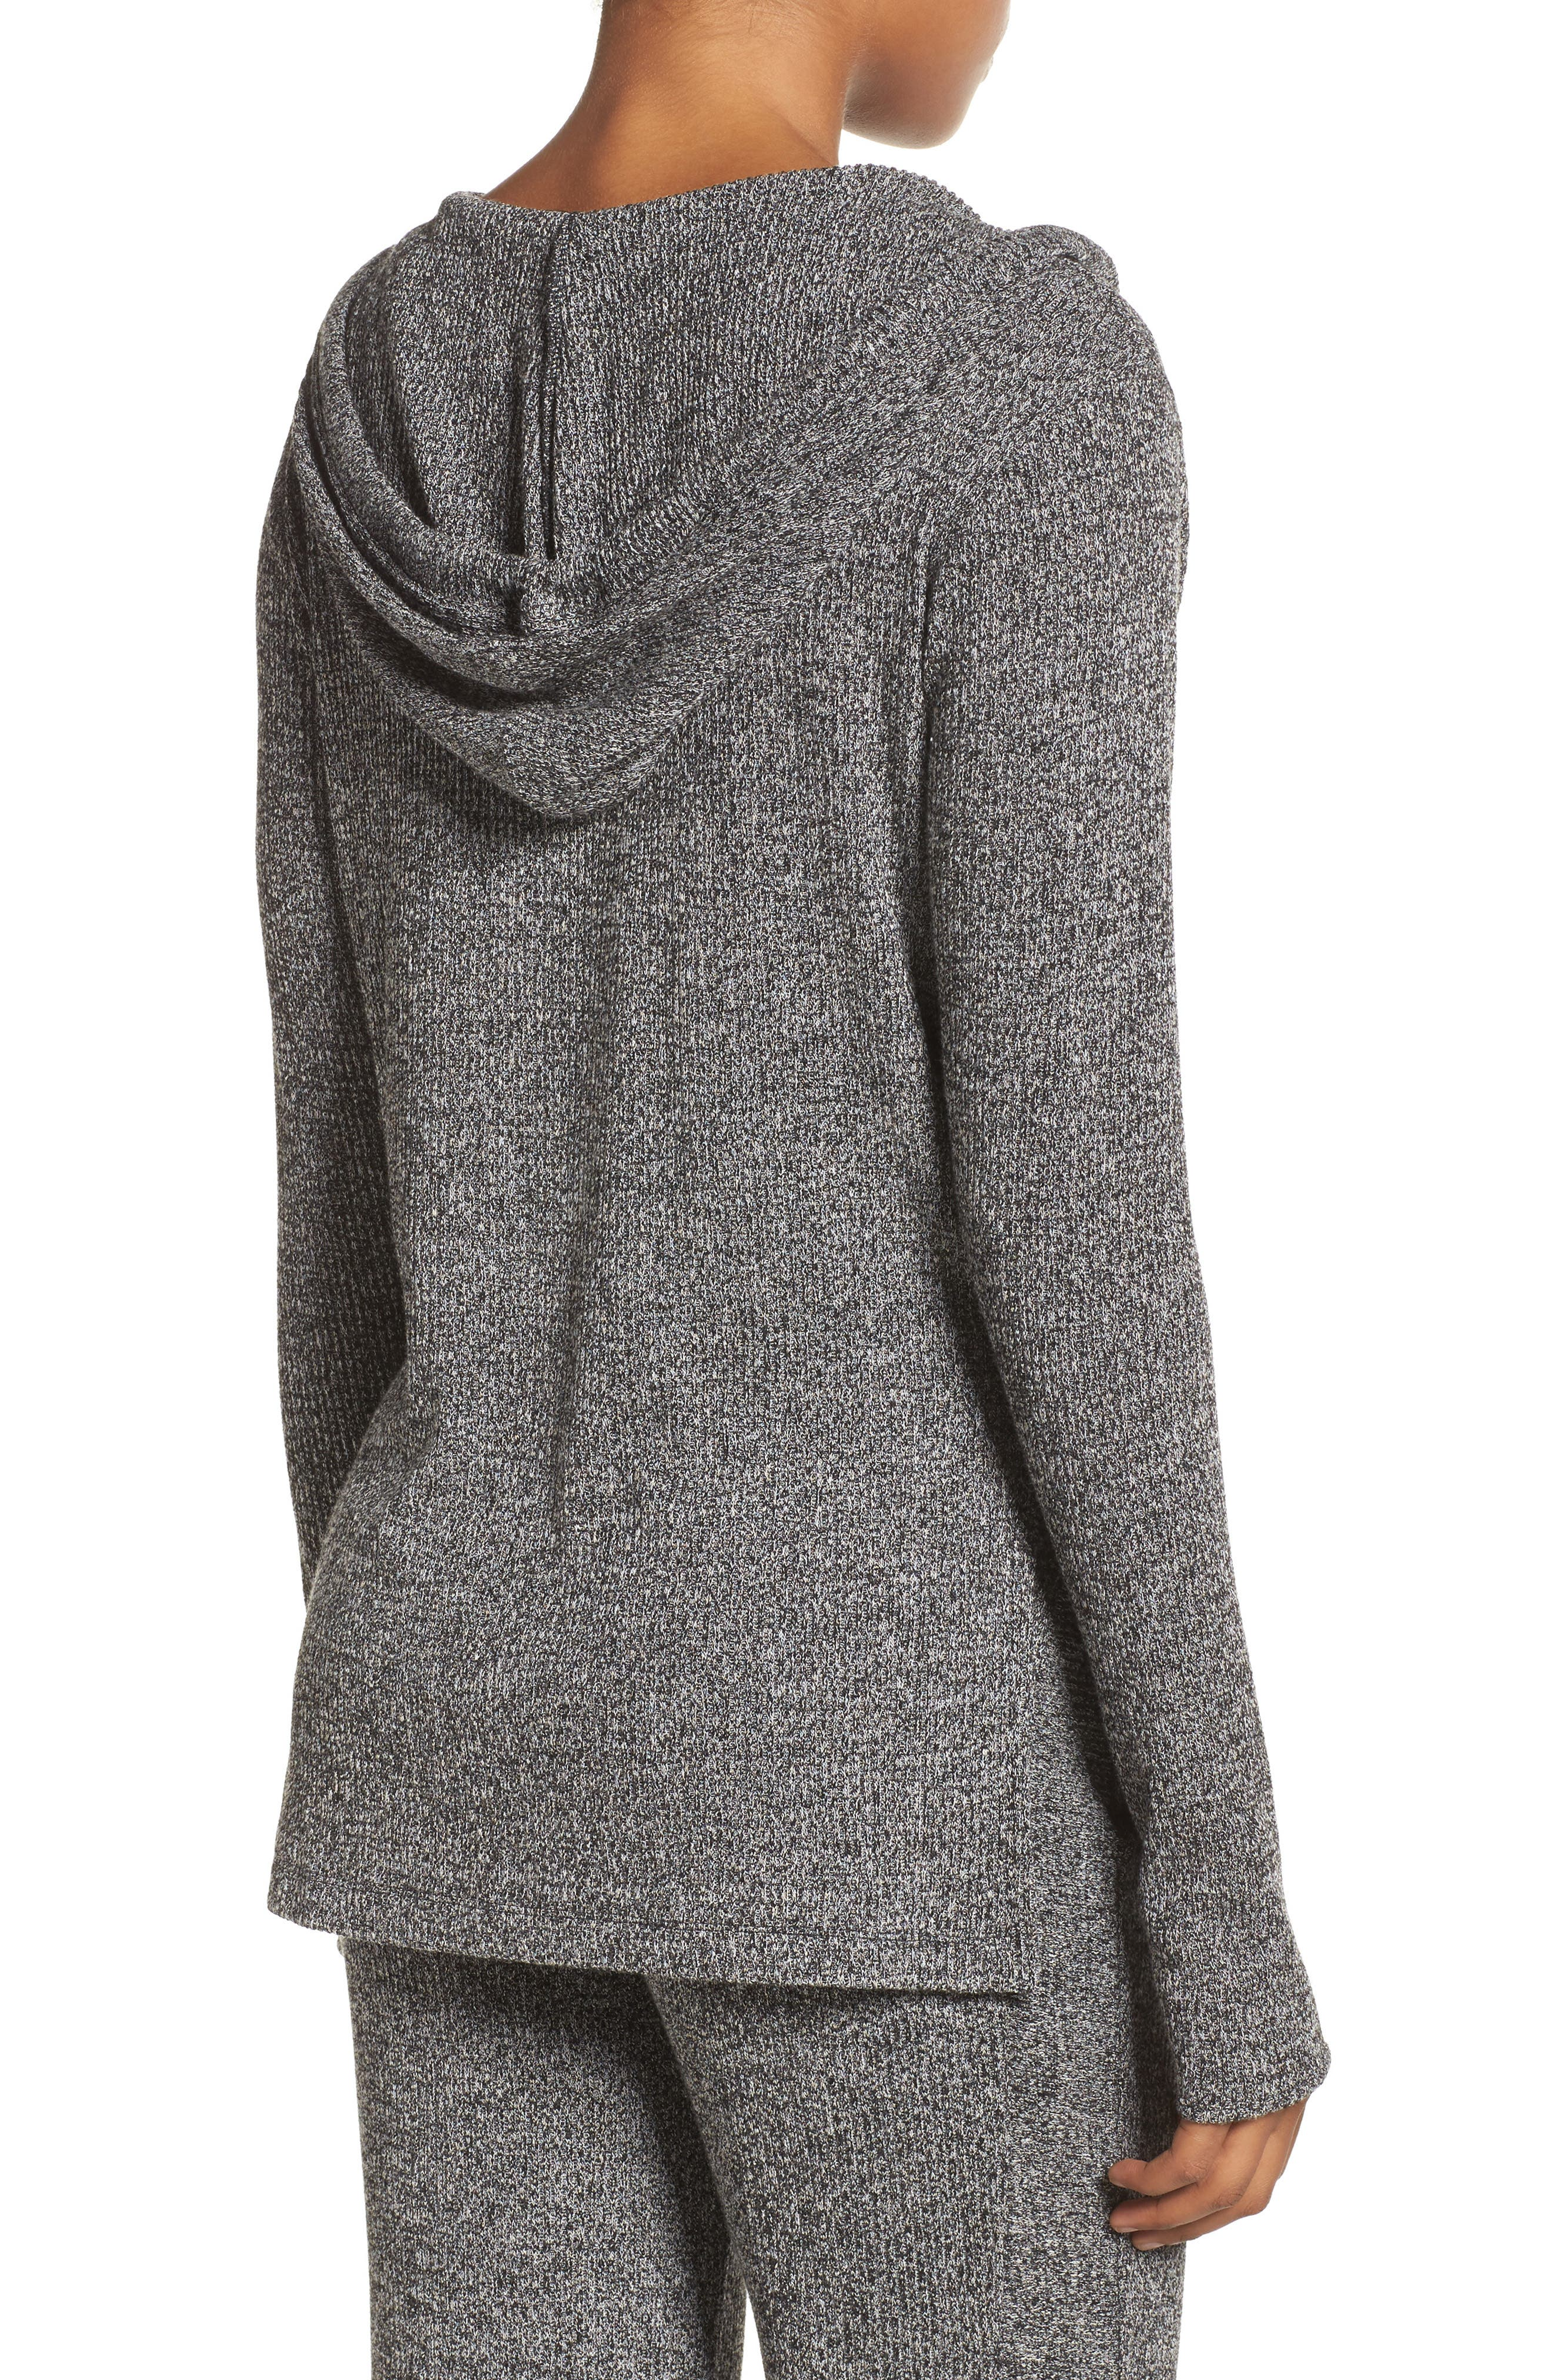 Mantra Hooded Pullover Top,                             Alternate thumbnail 2, color,                             001